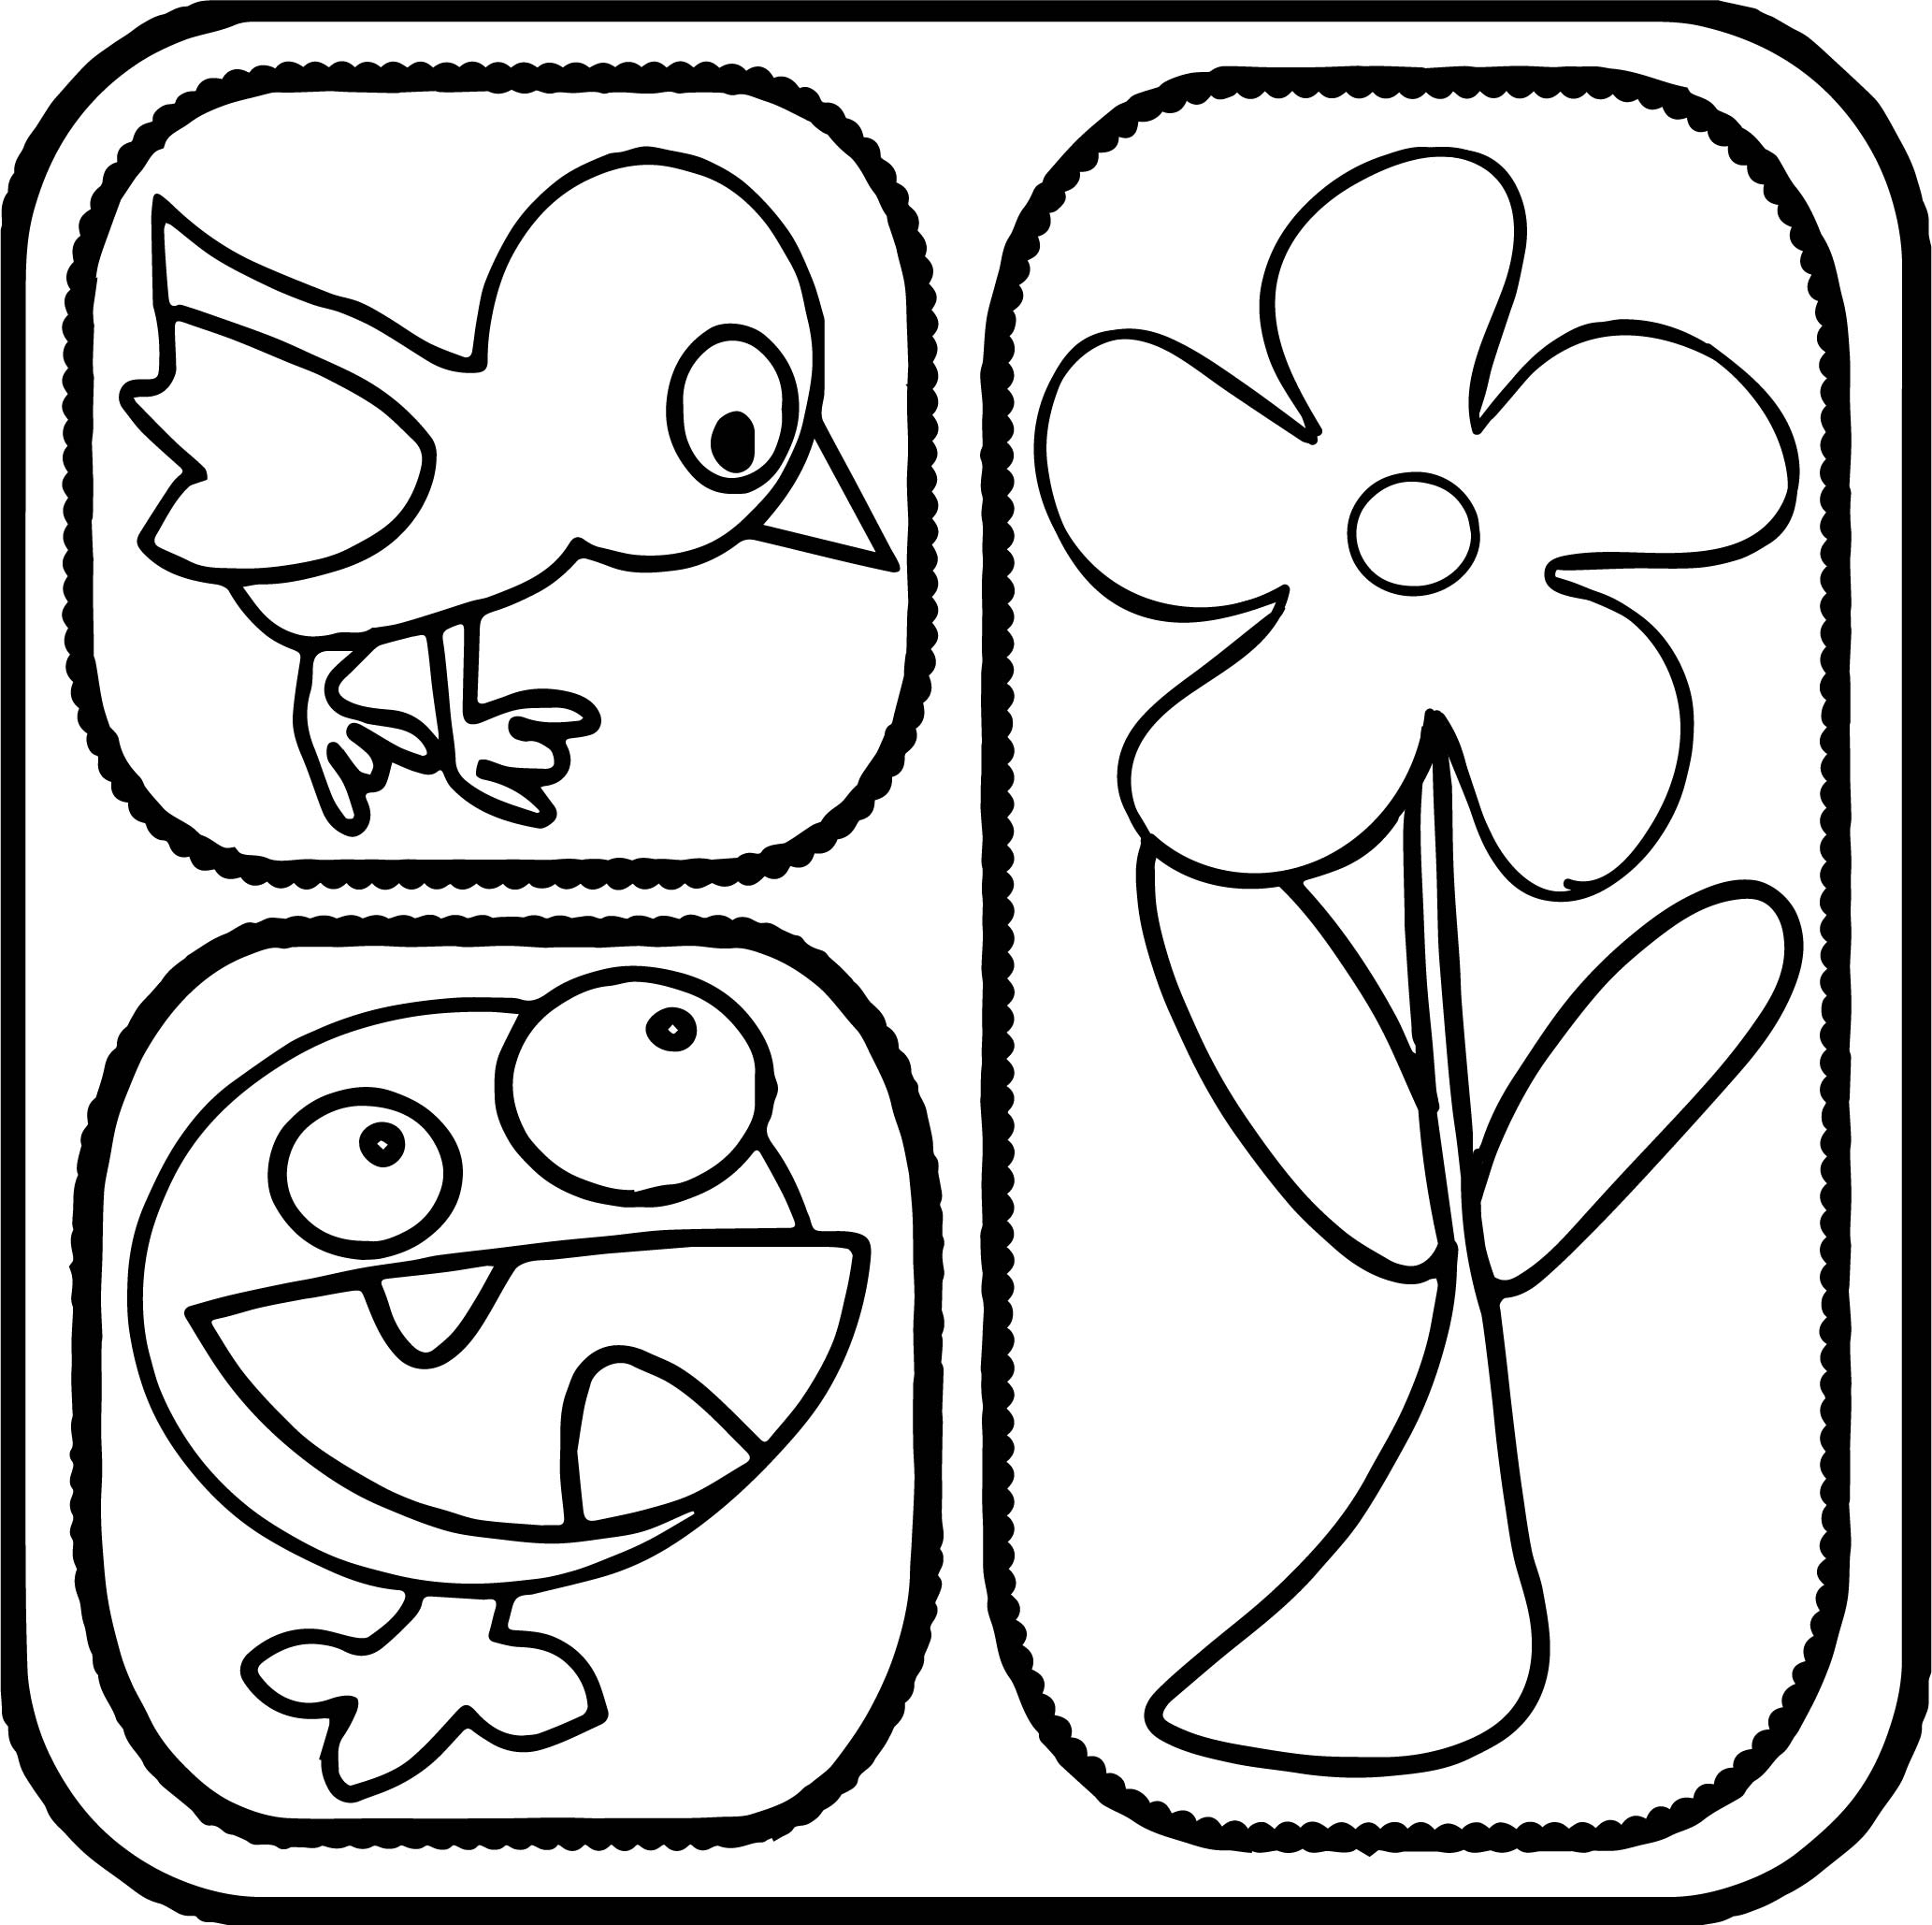 Abc Shape Bird Flower Creature Coloring Page